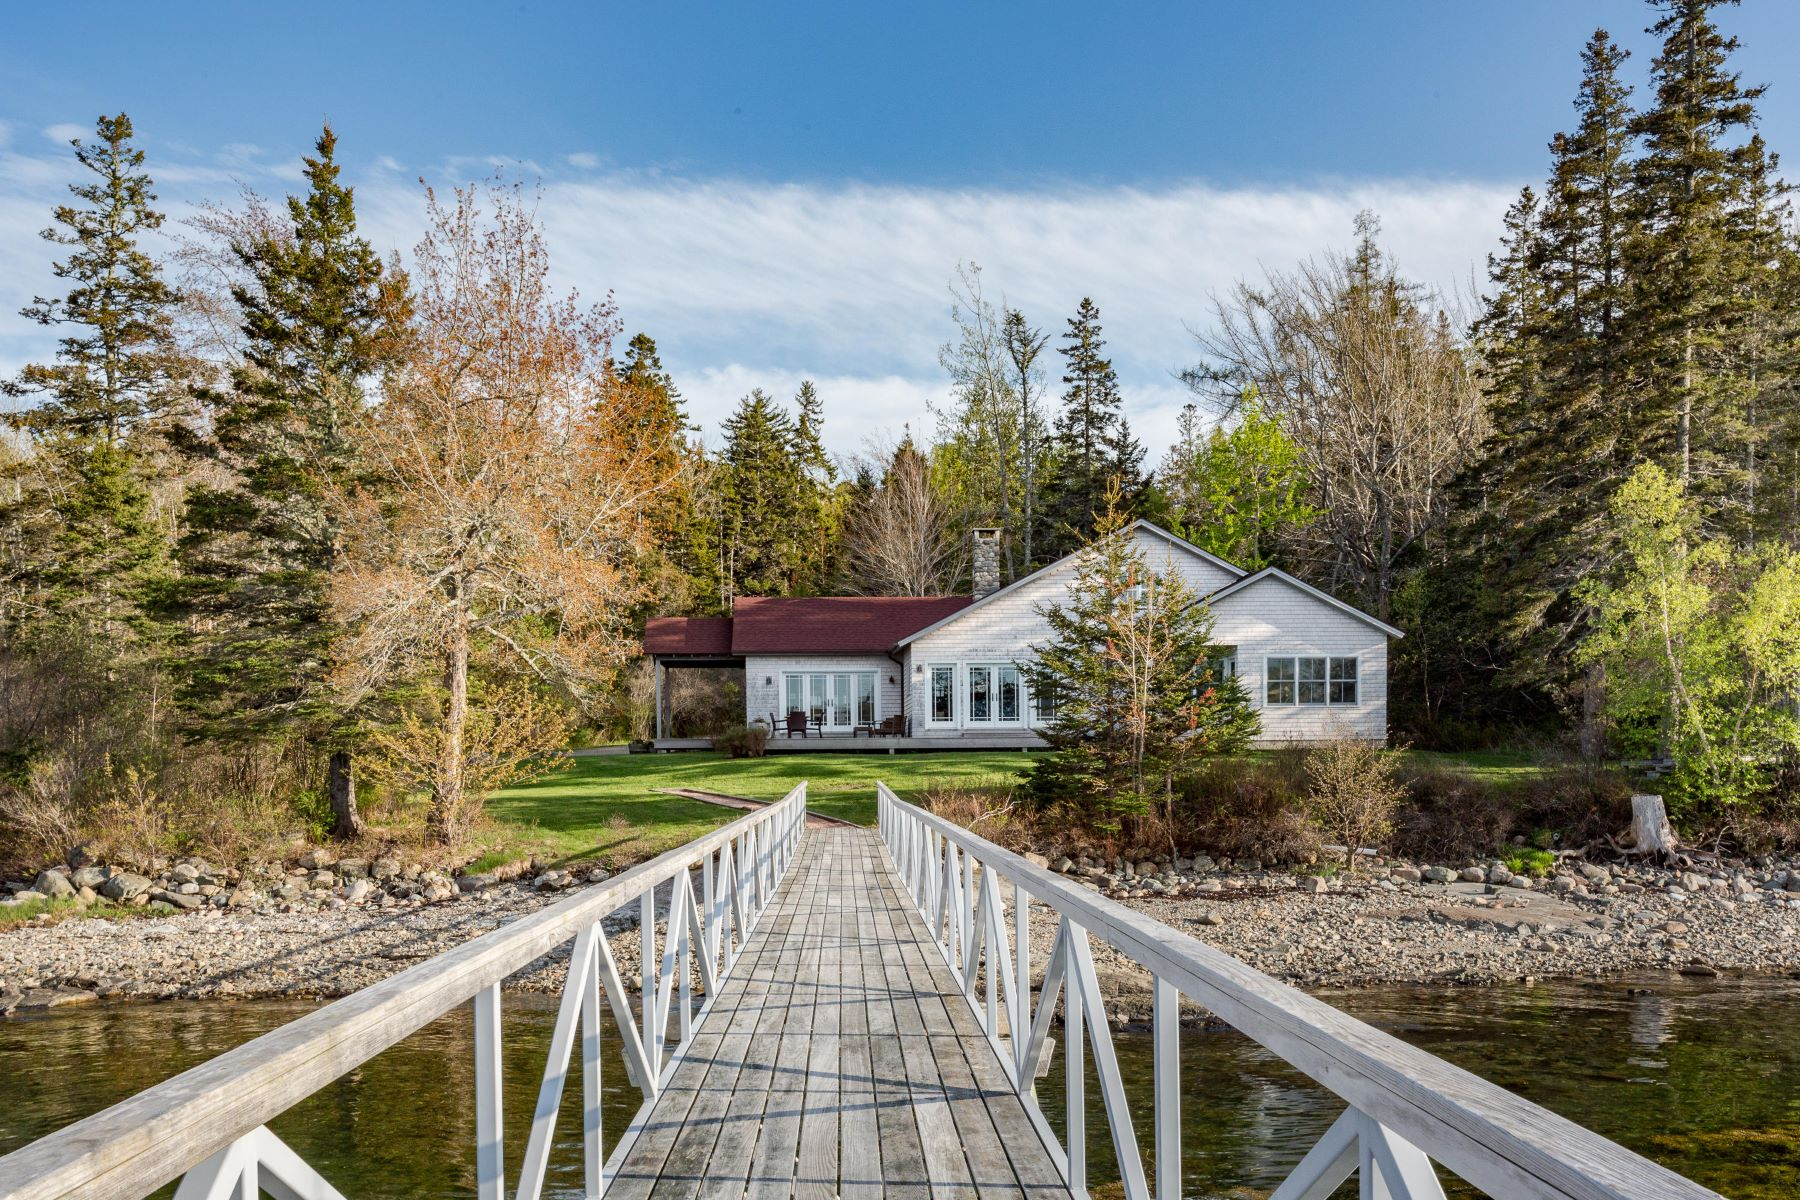 Single Family Homes for Sale at Southwest Harbor, Maine 04679 United States